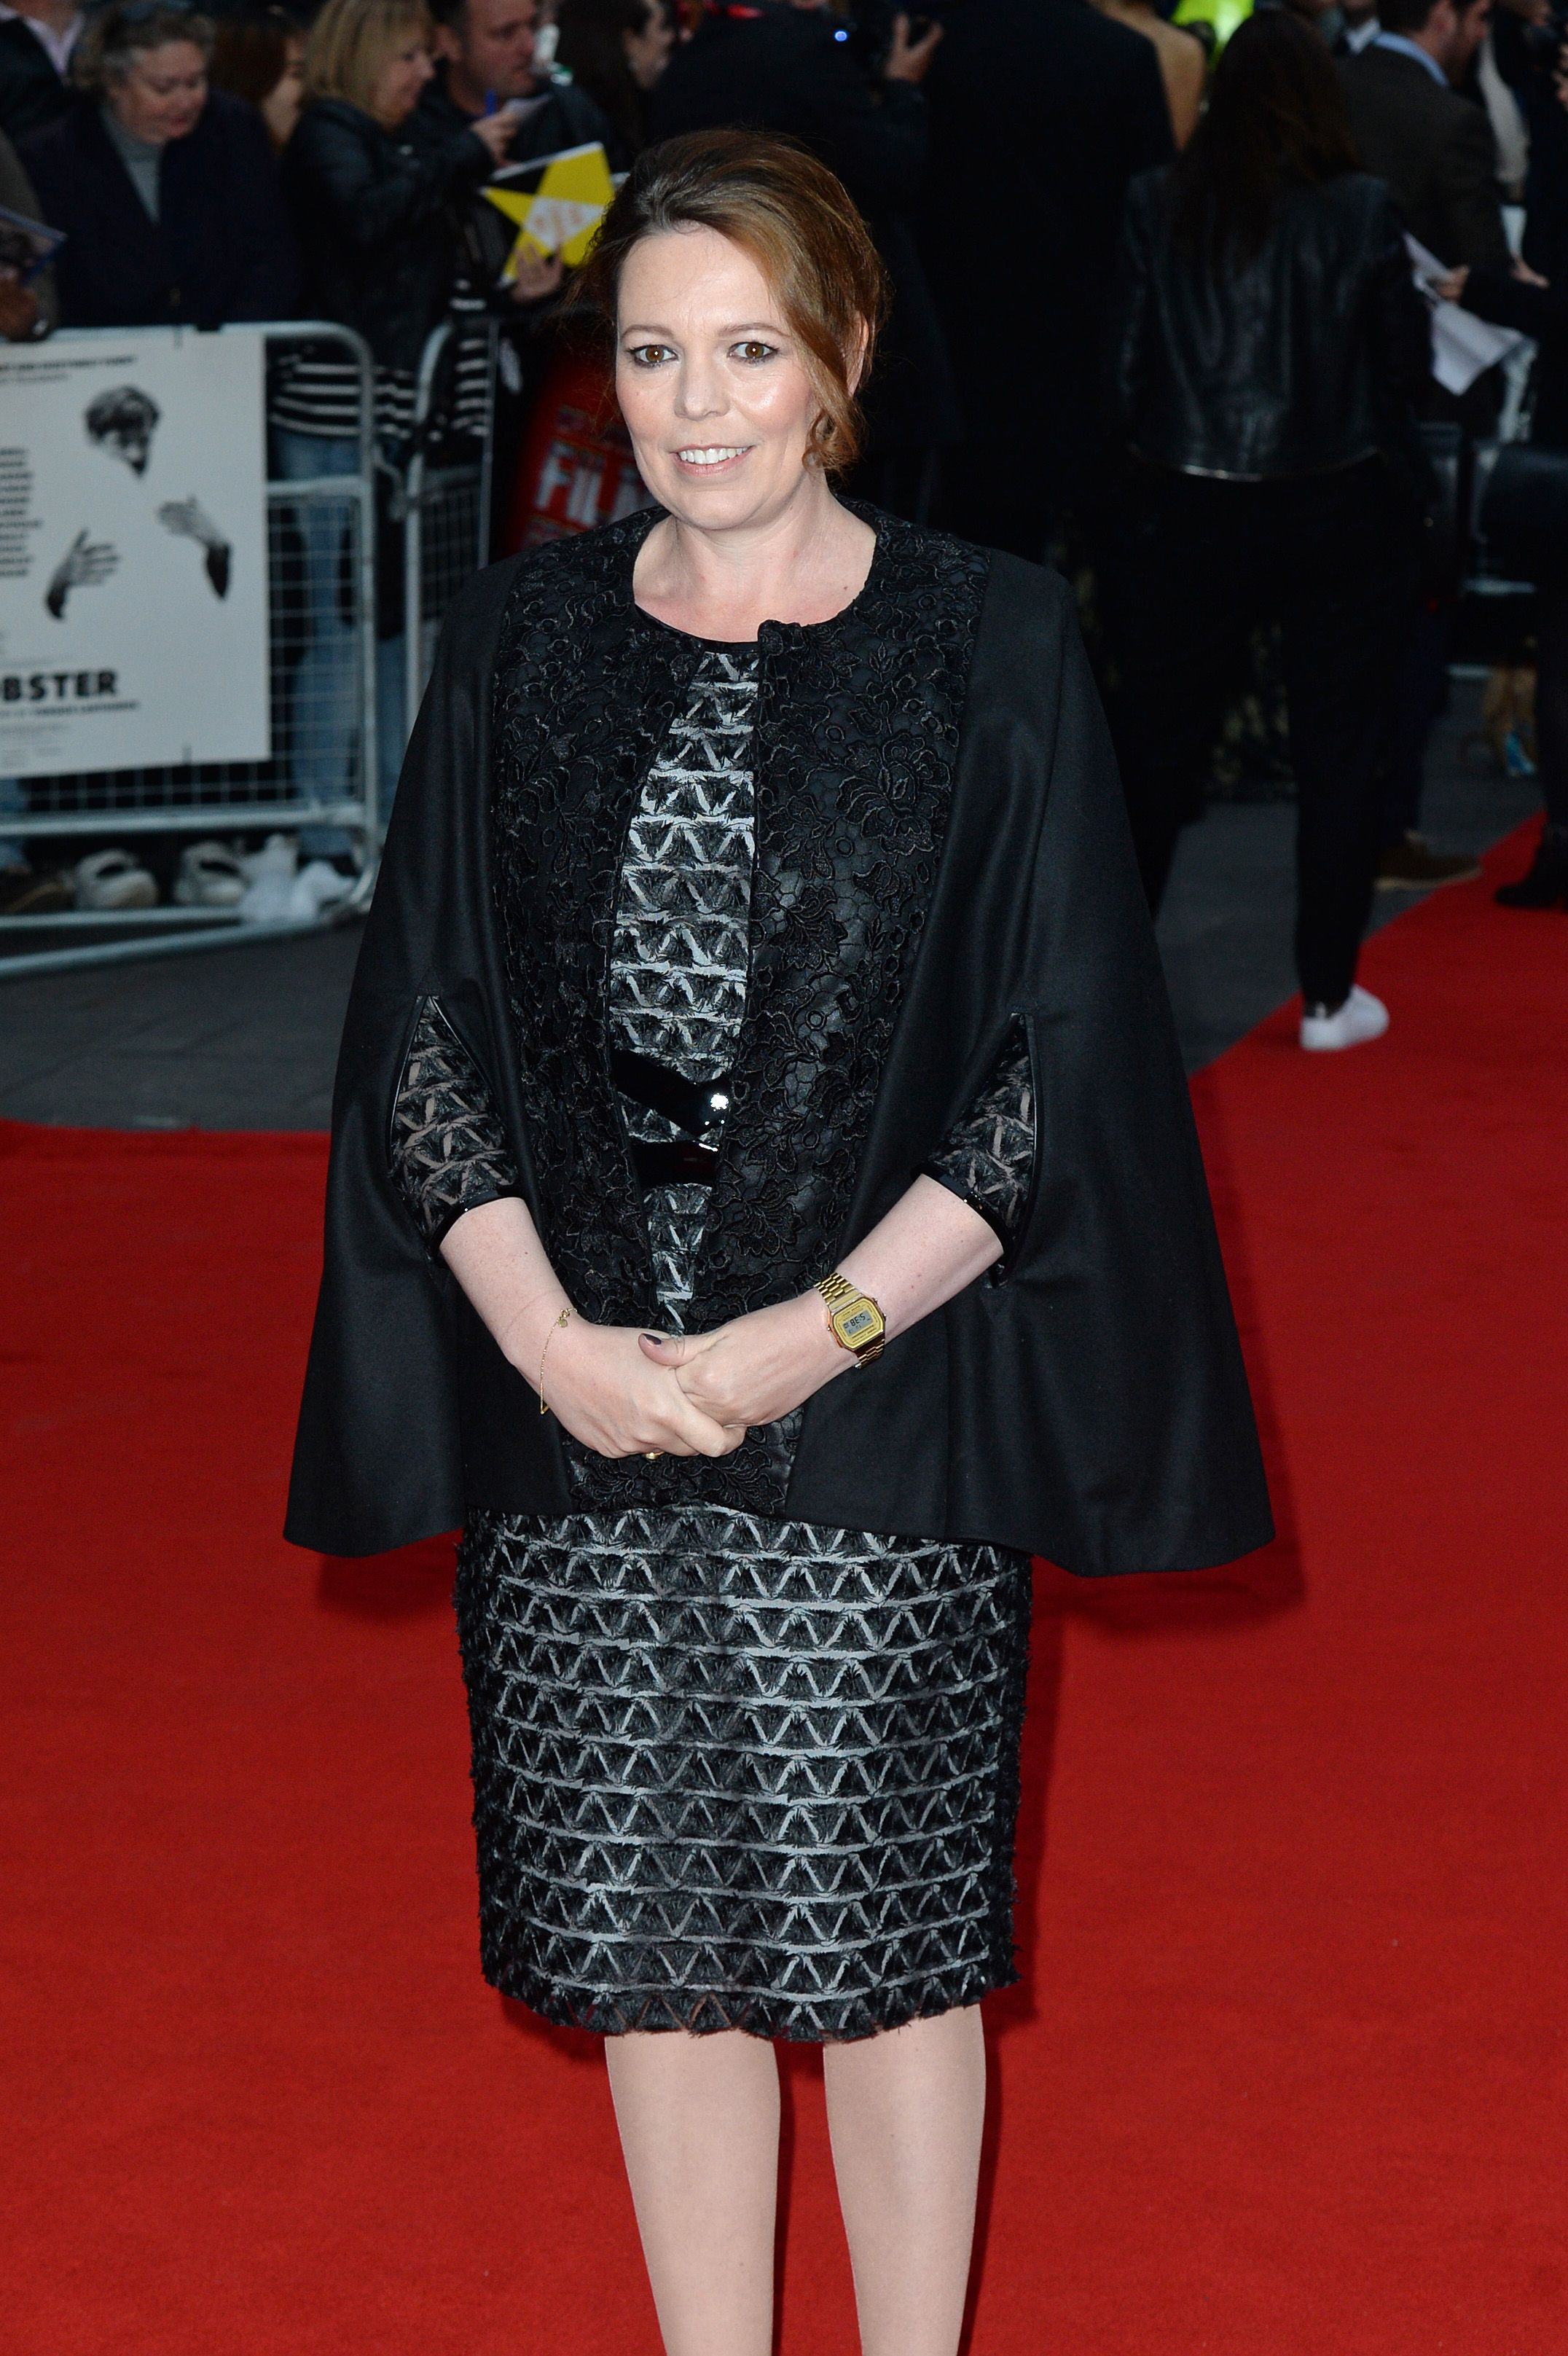 For a screening of The Lobster at the BFI Film Festival in London, Olivia wore a geometric-patterned dress with a chunky belt and black cape.